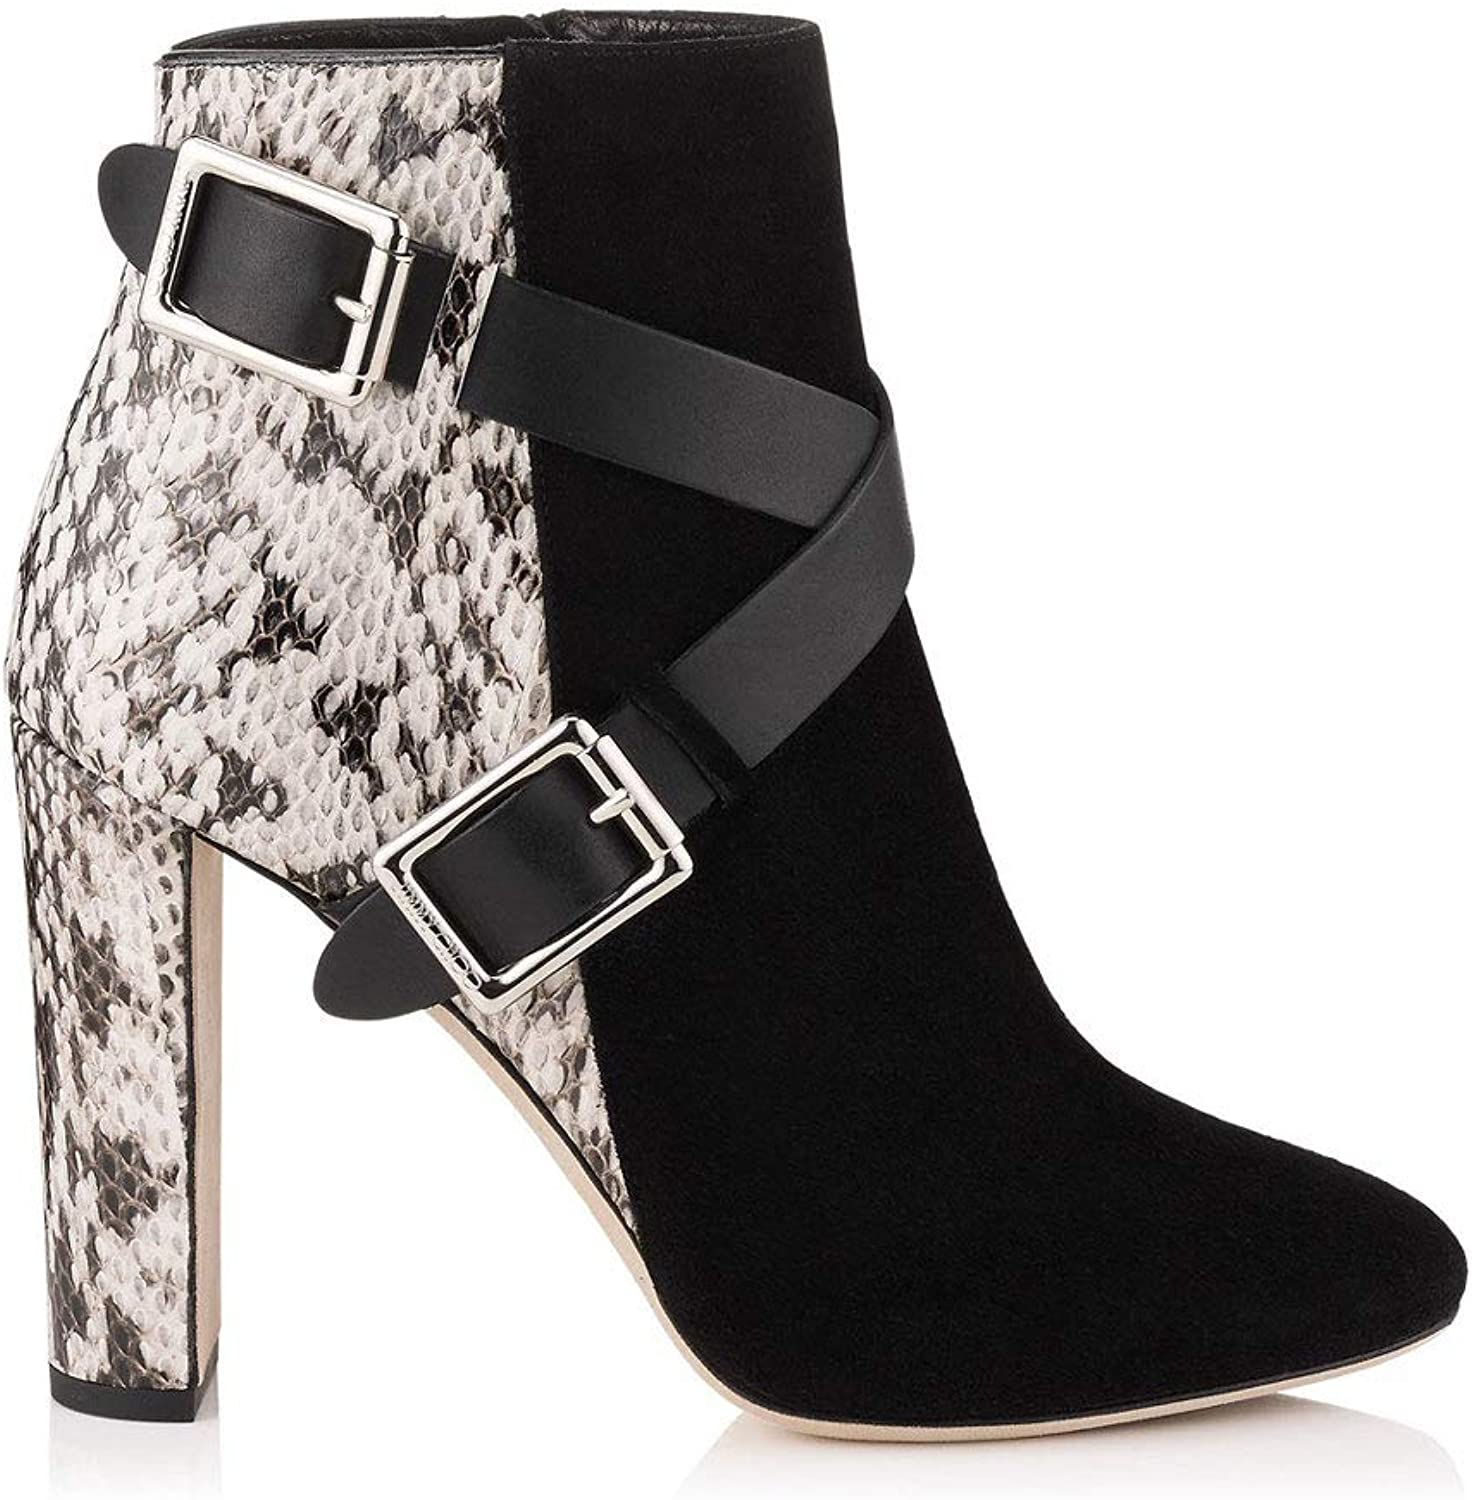 Women's High Heel Ankle Boots Cross Strap Metal Buckle Thick with Short Boots Round Head Side Zipper Stripe Chelsea Boots